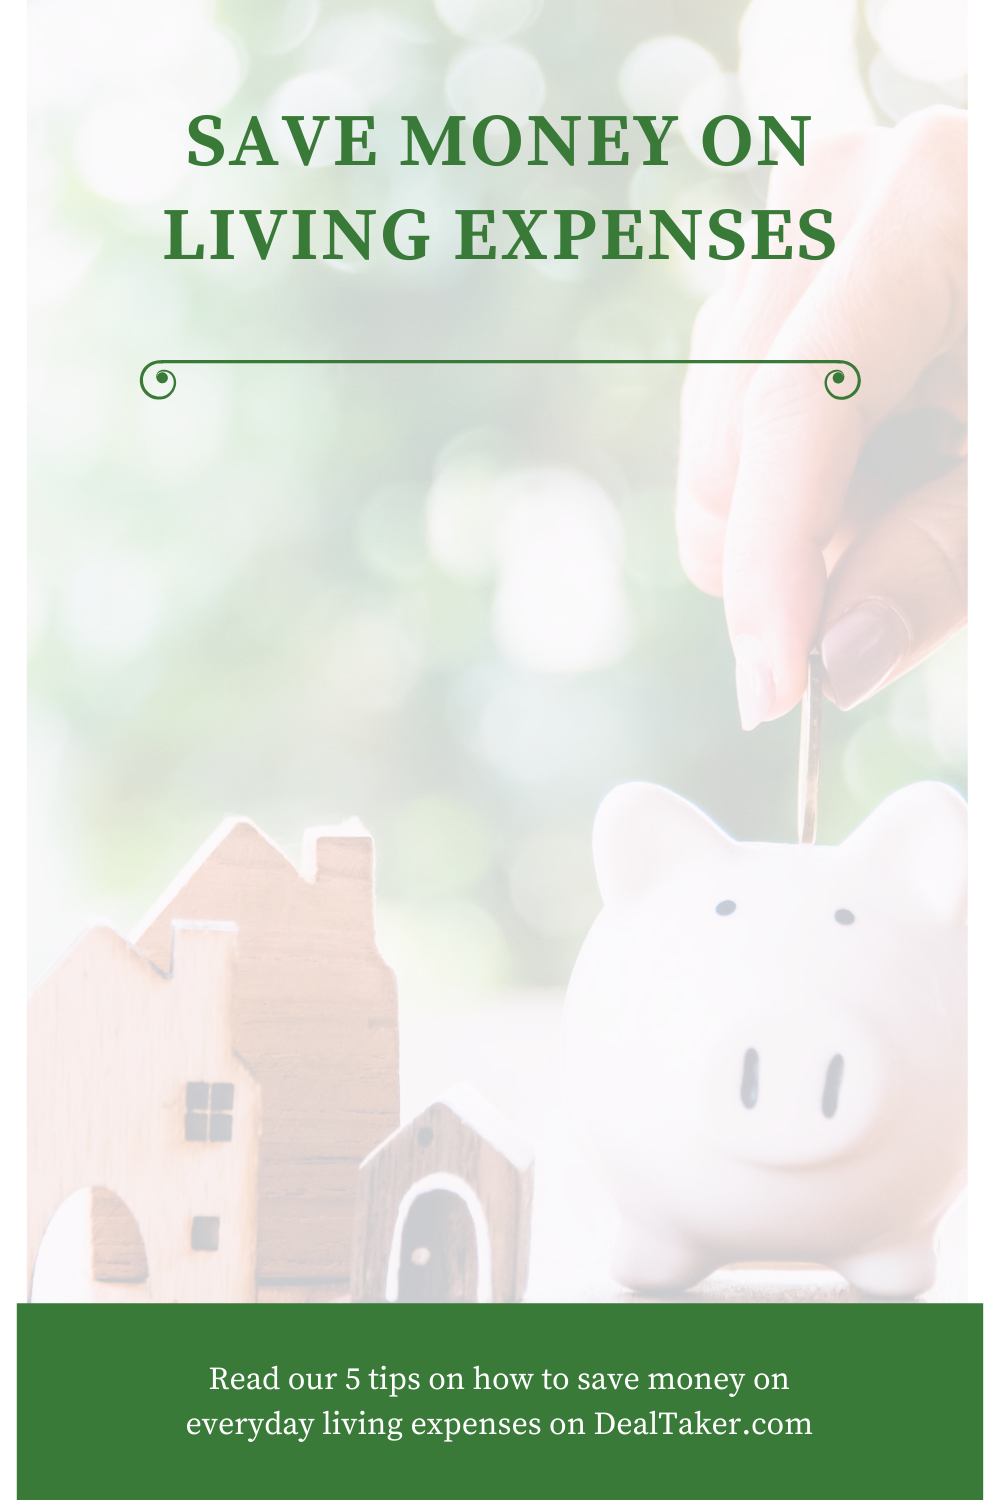 5 Tips On How To Save Money On Living Expenses